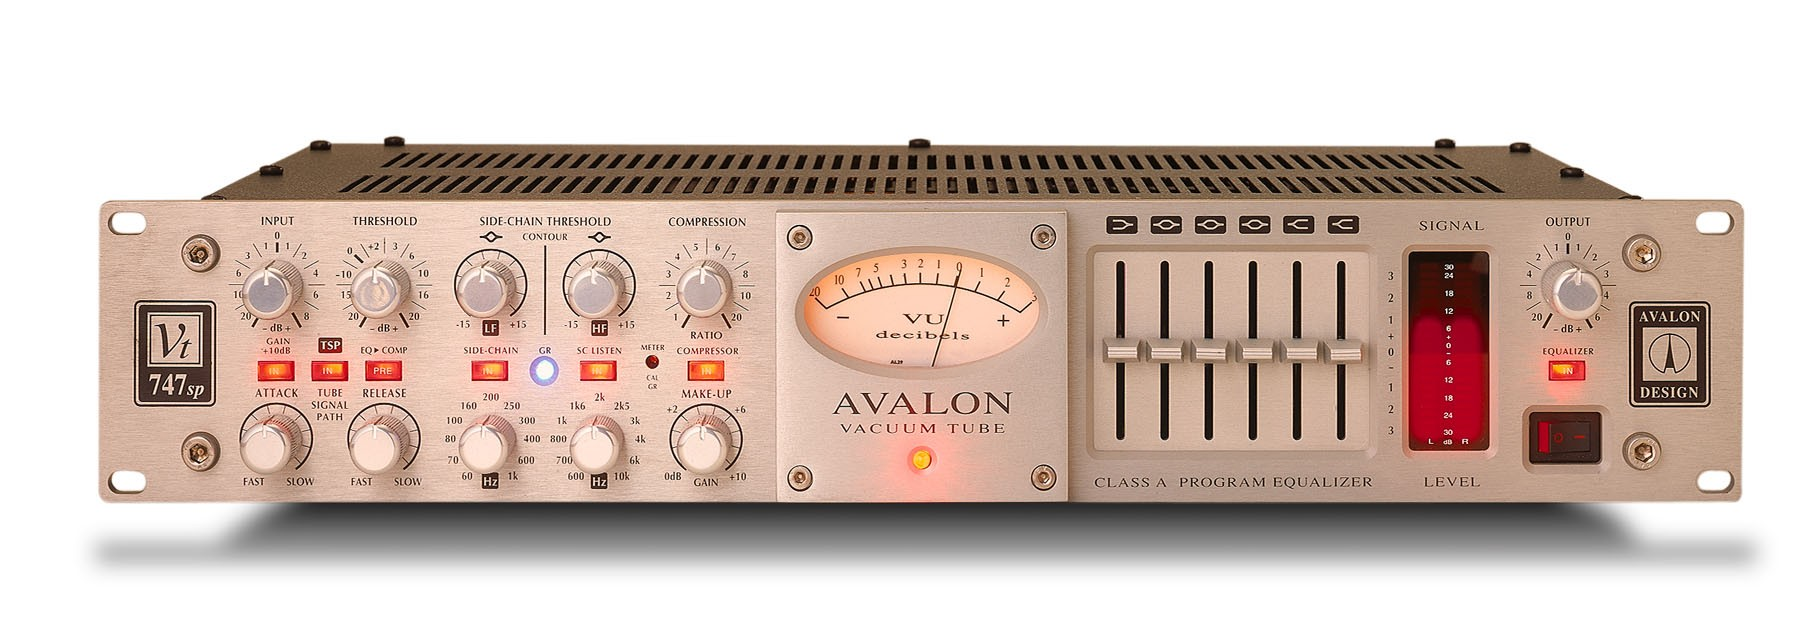 Avalon VT 747 (discontinued)